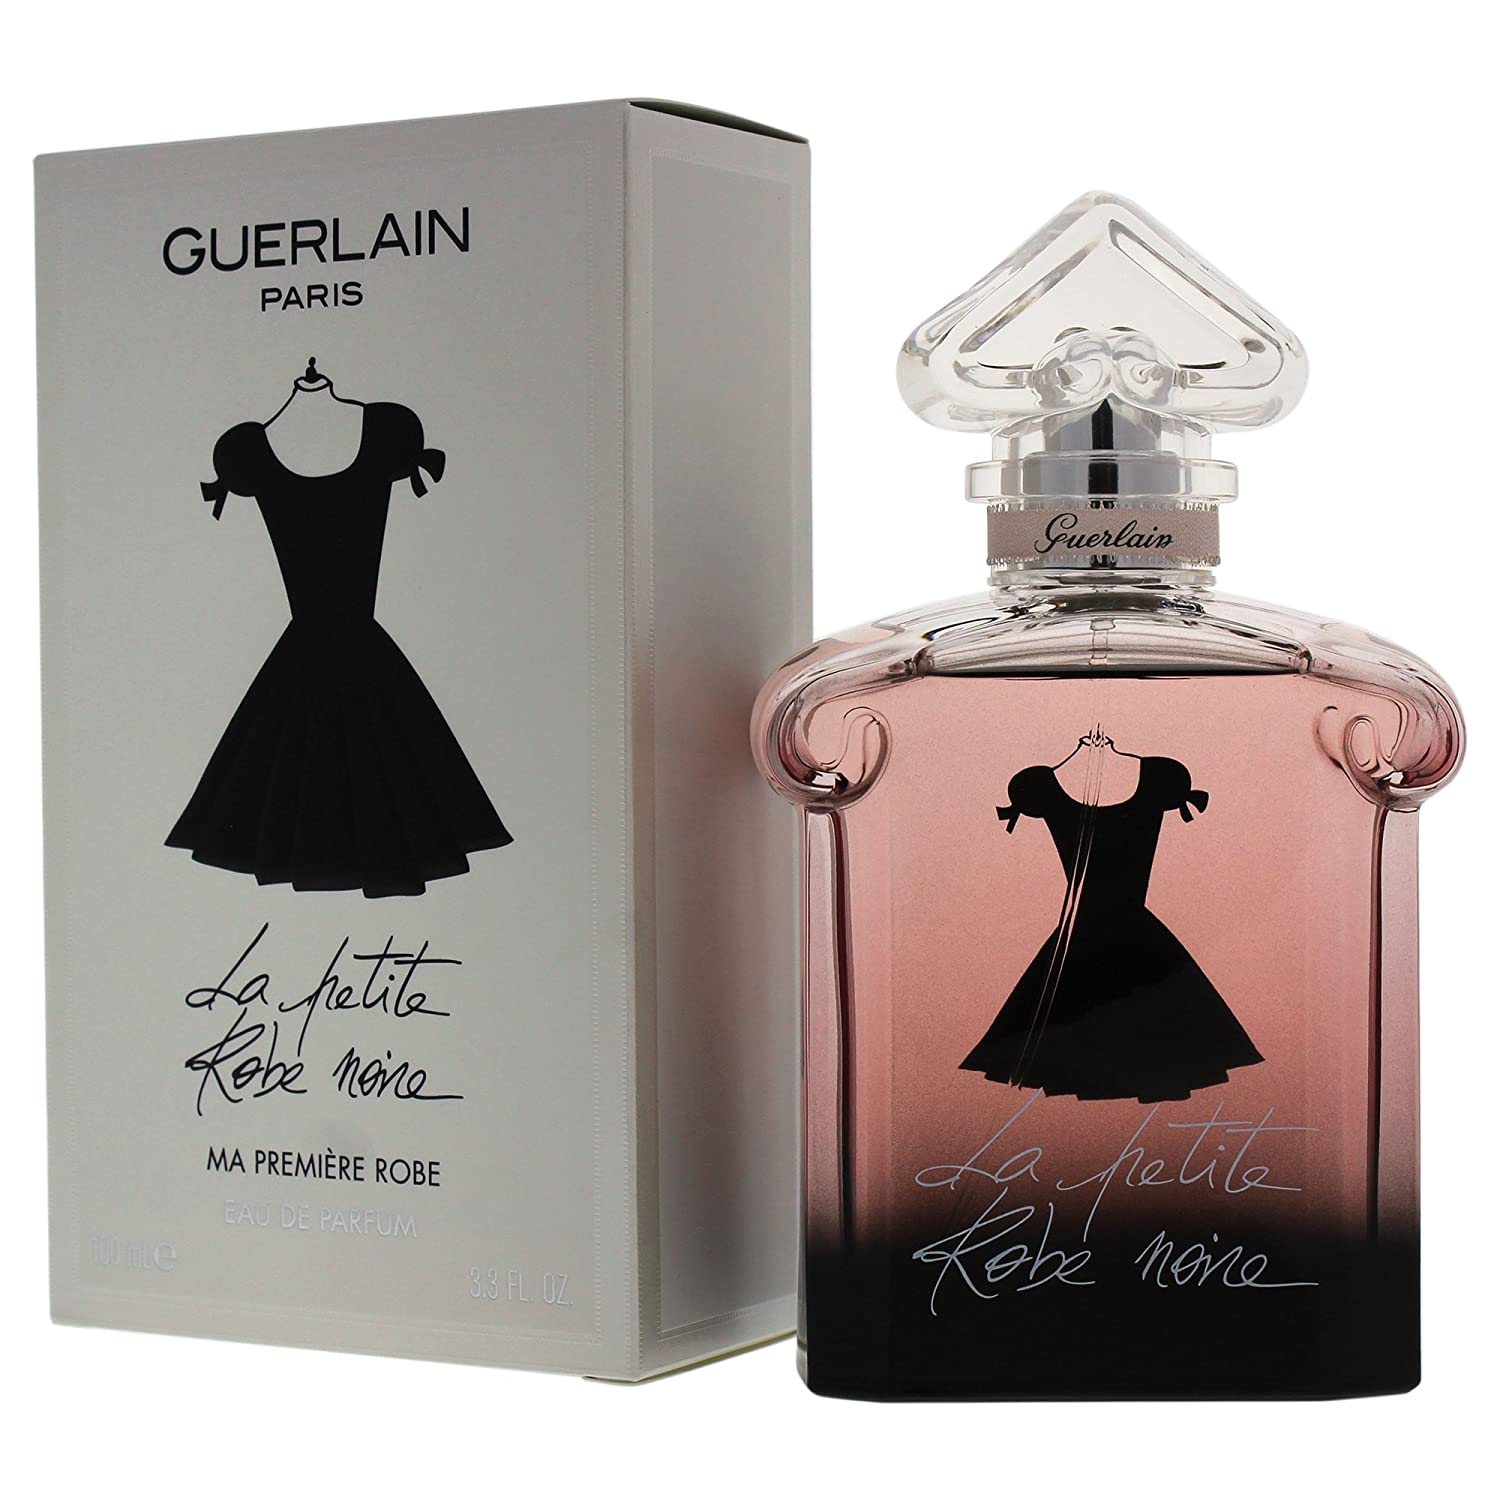 5a047461ad8 Amazon.com   Guerlain La Petite Robe Noire Eau de Parfum Spray for Women